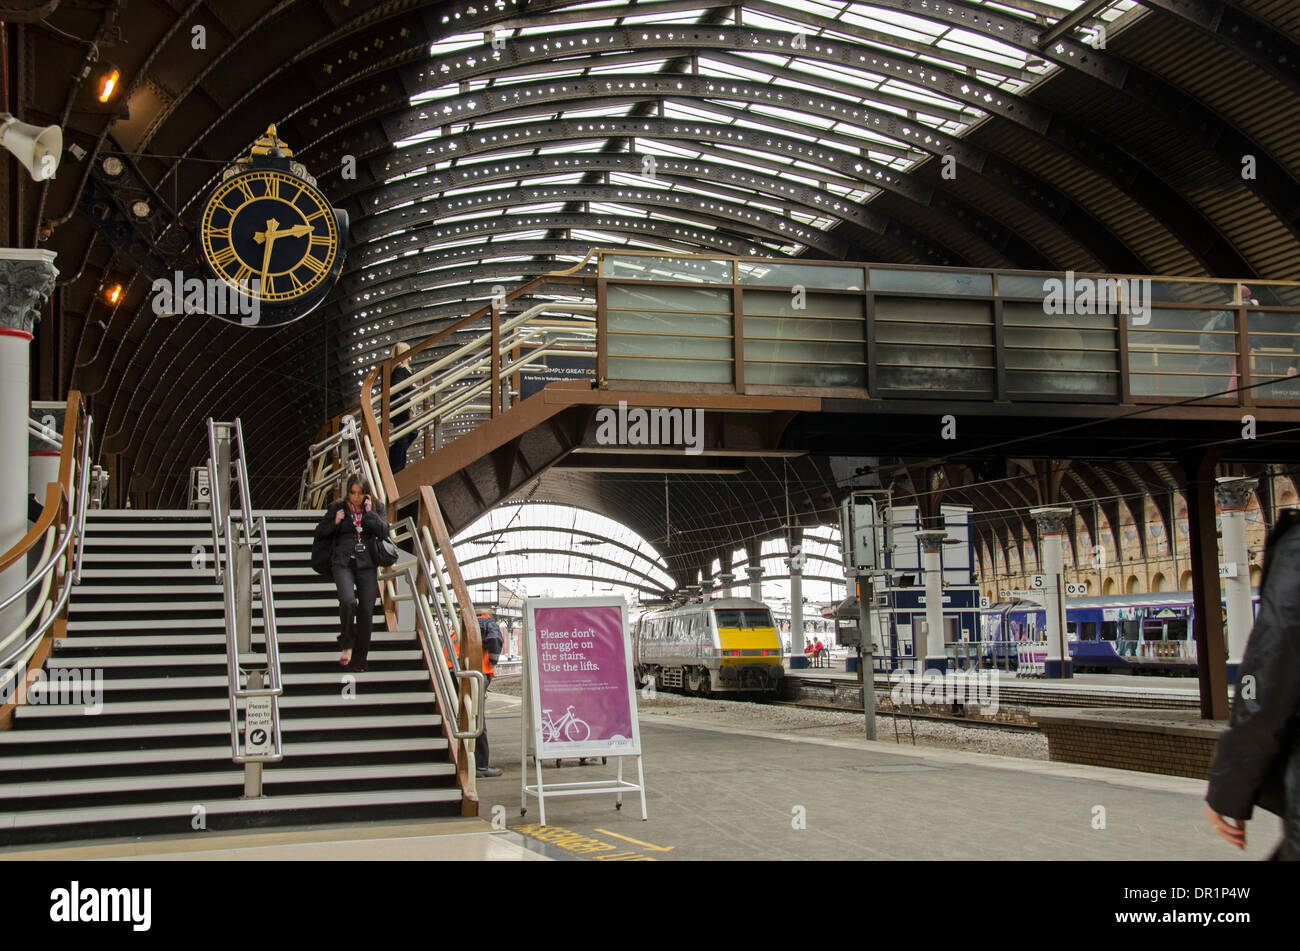 Interior of trainshed with iron & glass roof, stationary trains & woman walking by platform clock - York Railway Station, North Yorkshire, England, UK - Stock Image